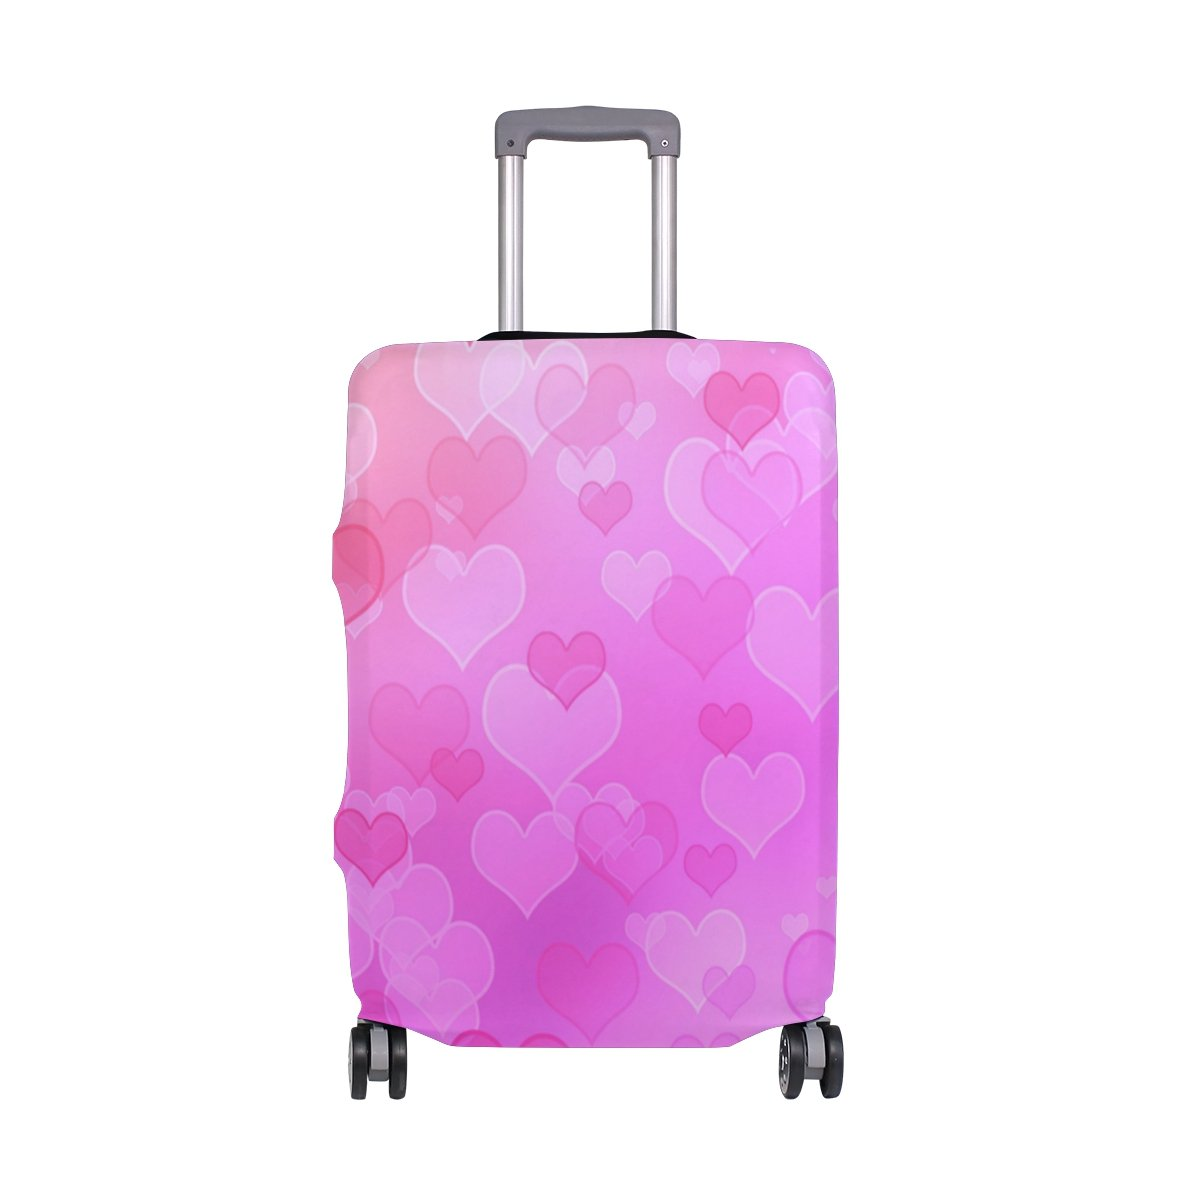 My Daily Pink Hearts Valentine's Day Wedding Luggage Cover Fits 28-29 Inch Suitcase Spandex Travel Protector L